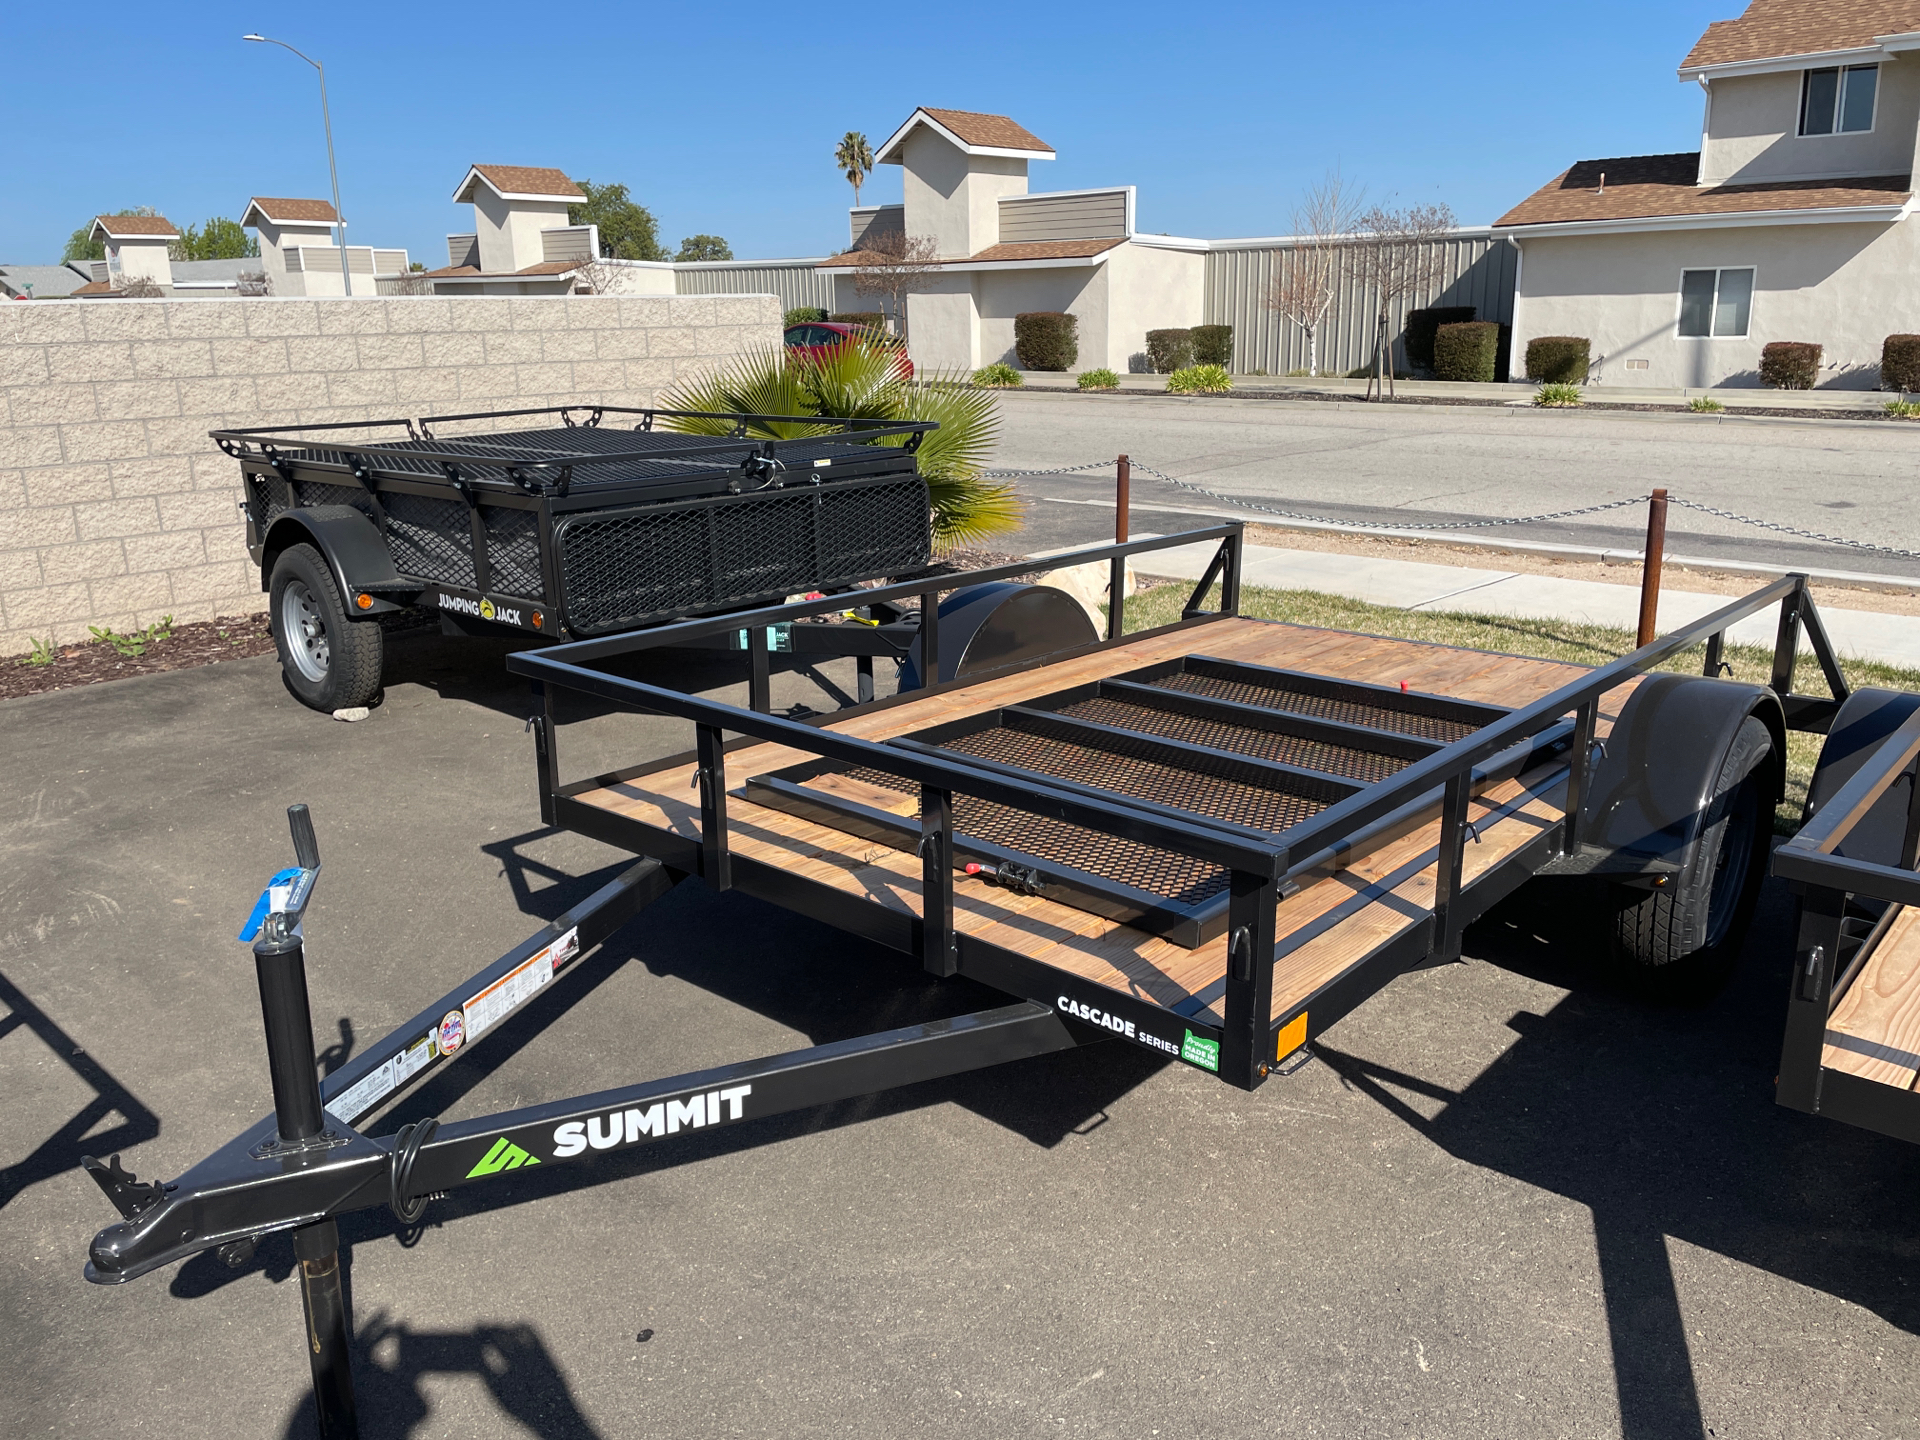 2021 SUMMIT TRAILER MFG SA UTILITY in Paso Robles, California - Photo 1